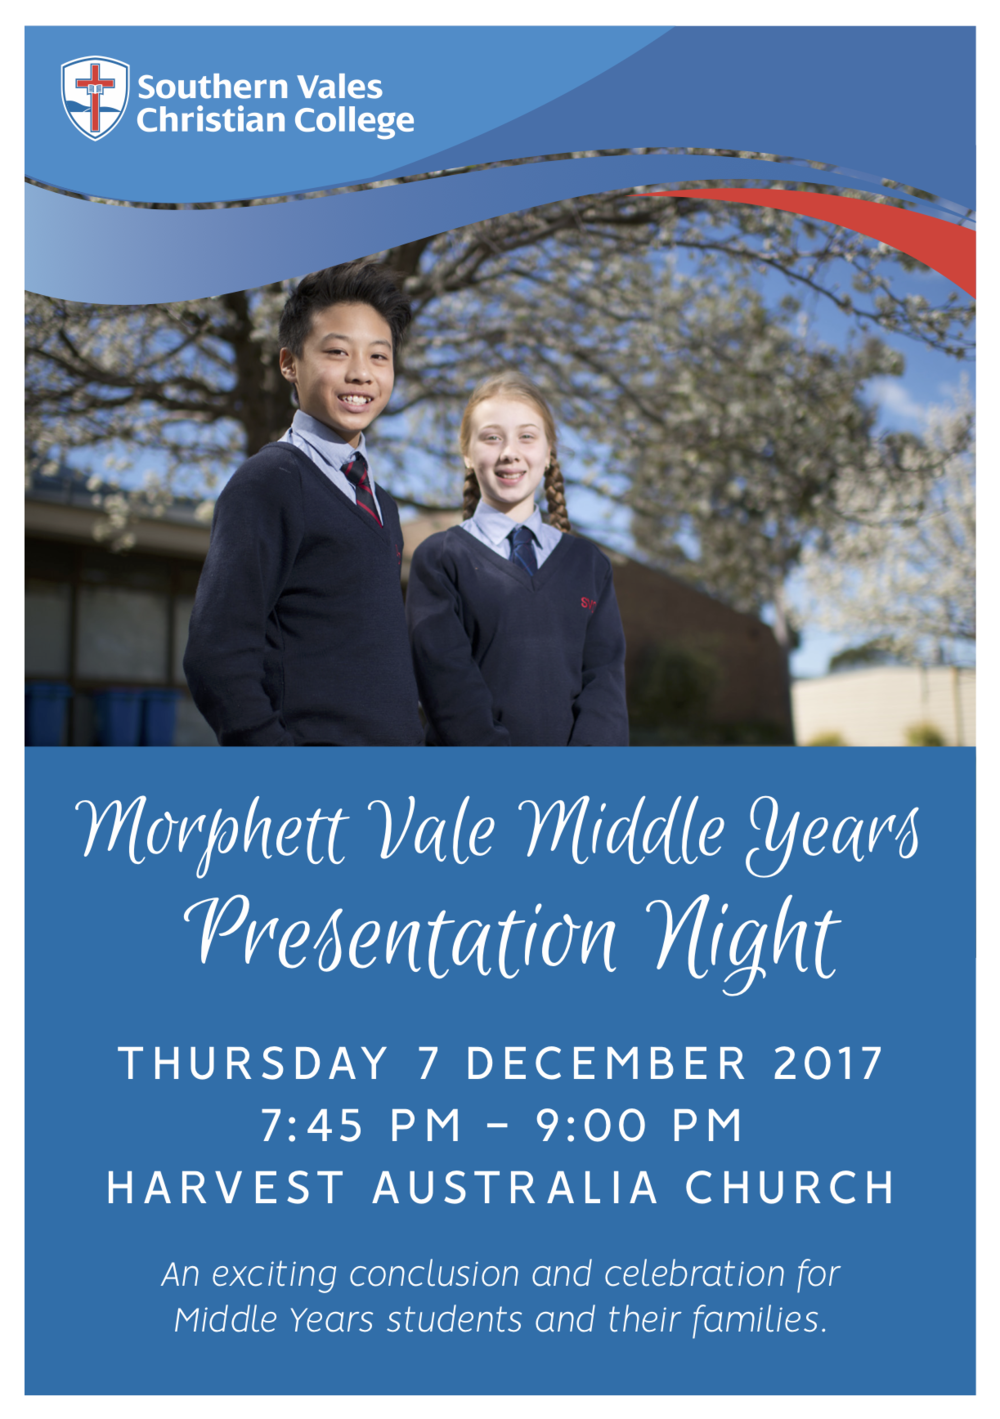 Middle Years Presentation Night Invitation MV.png